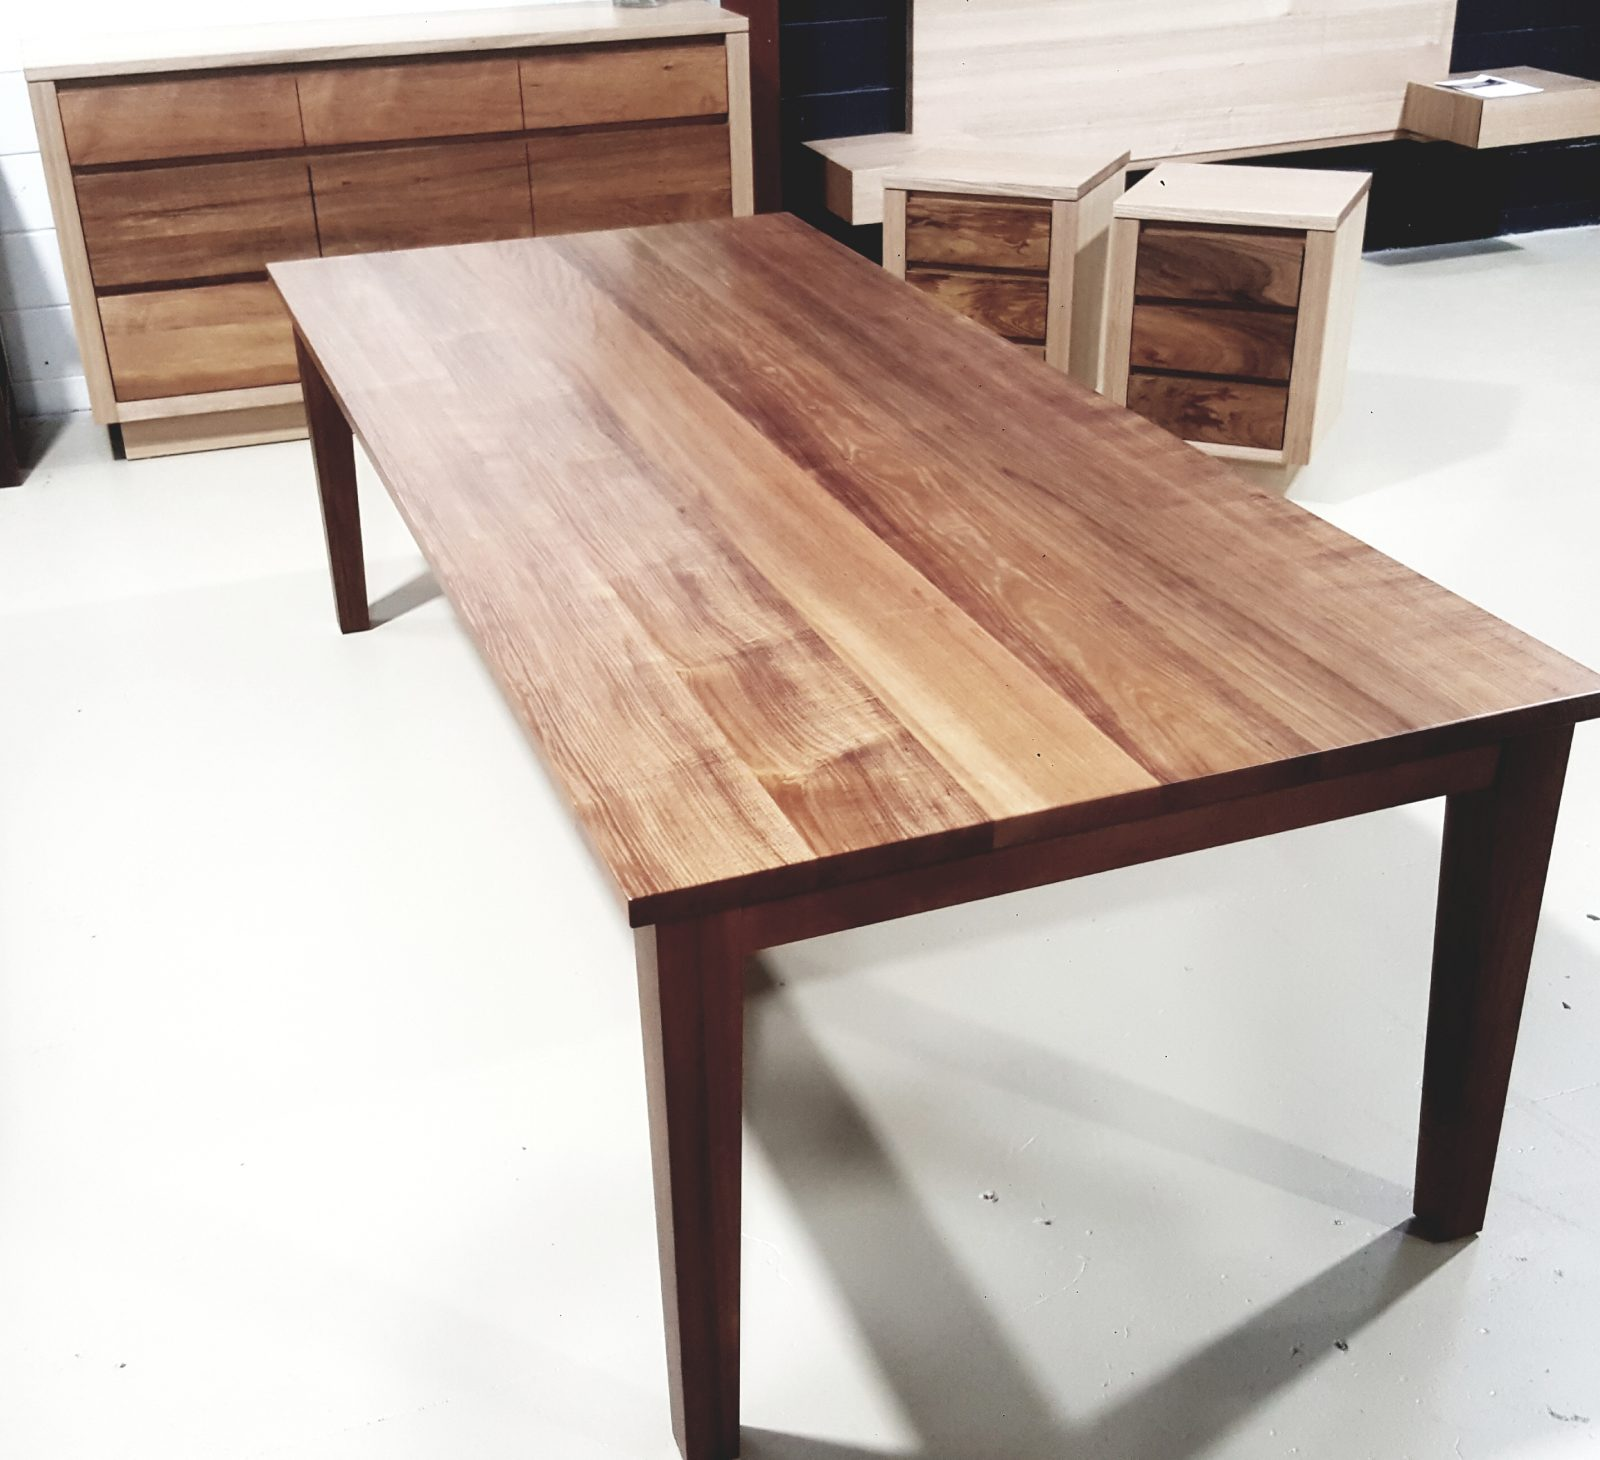 Urrbrae Dining Table Image